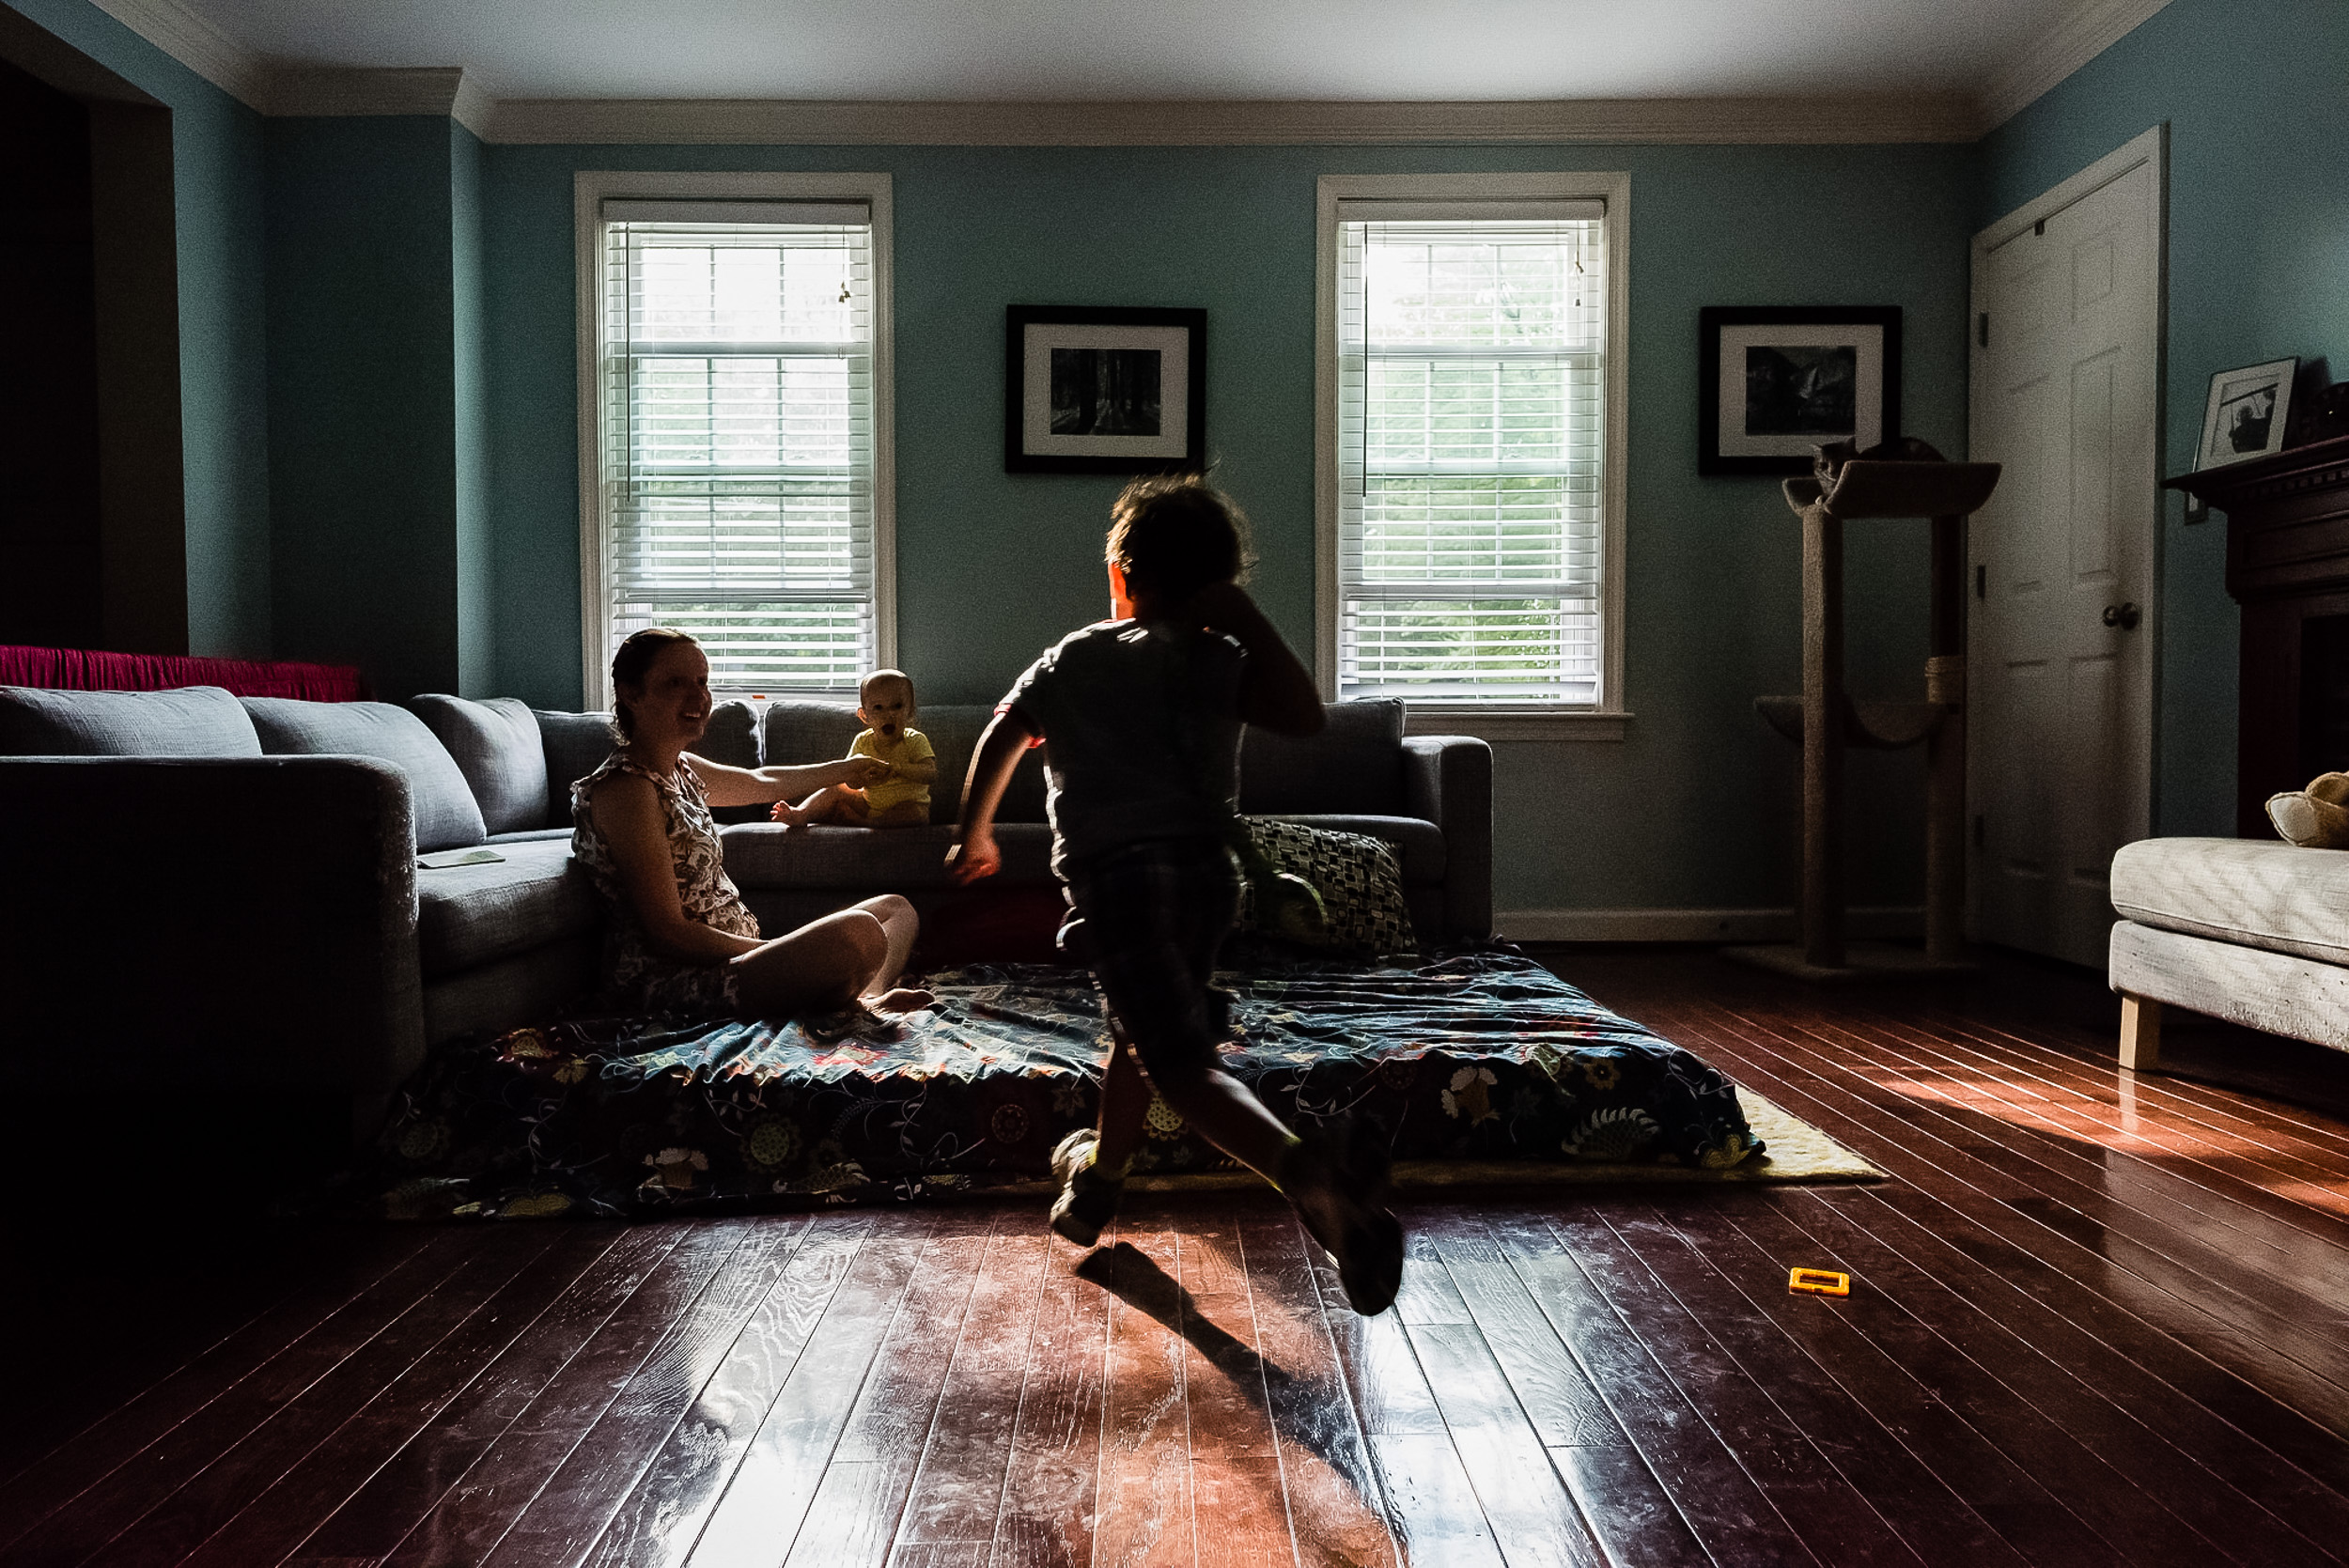 August-Summer-Documentary-Favorites-by-Northern-Virginia-Family-Photographer-Nicole-Sanchez-9.jpg